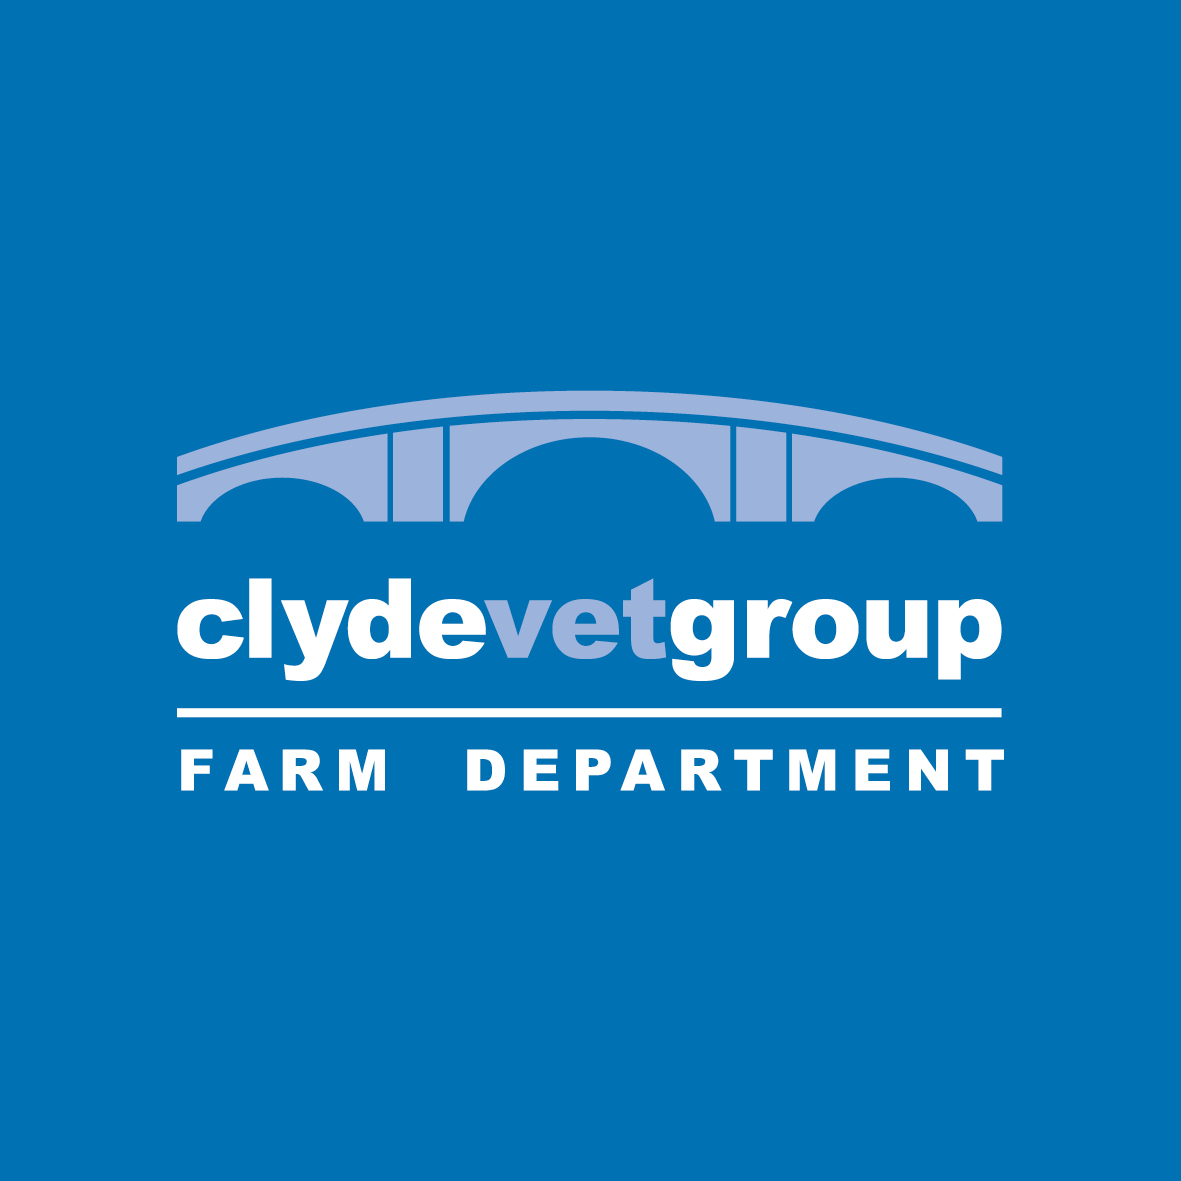 Clyde Veterinary Group, Stirling